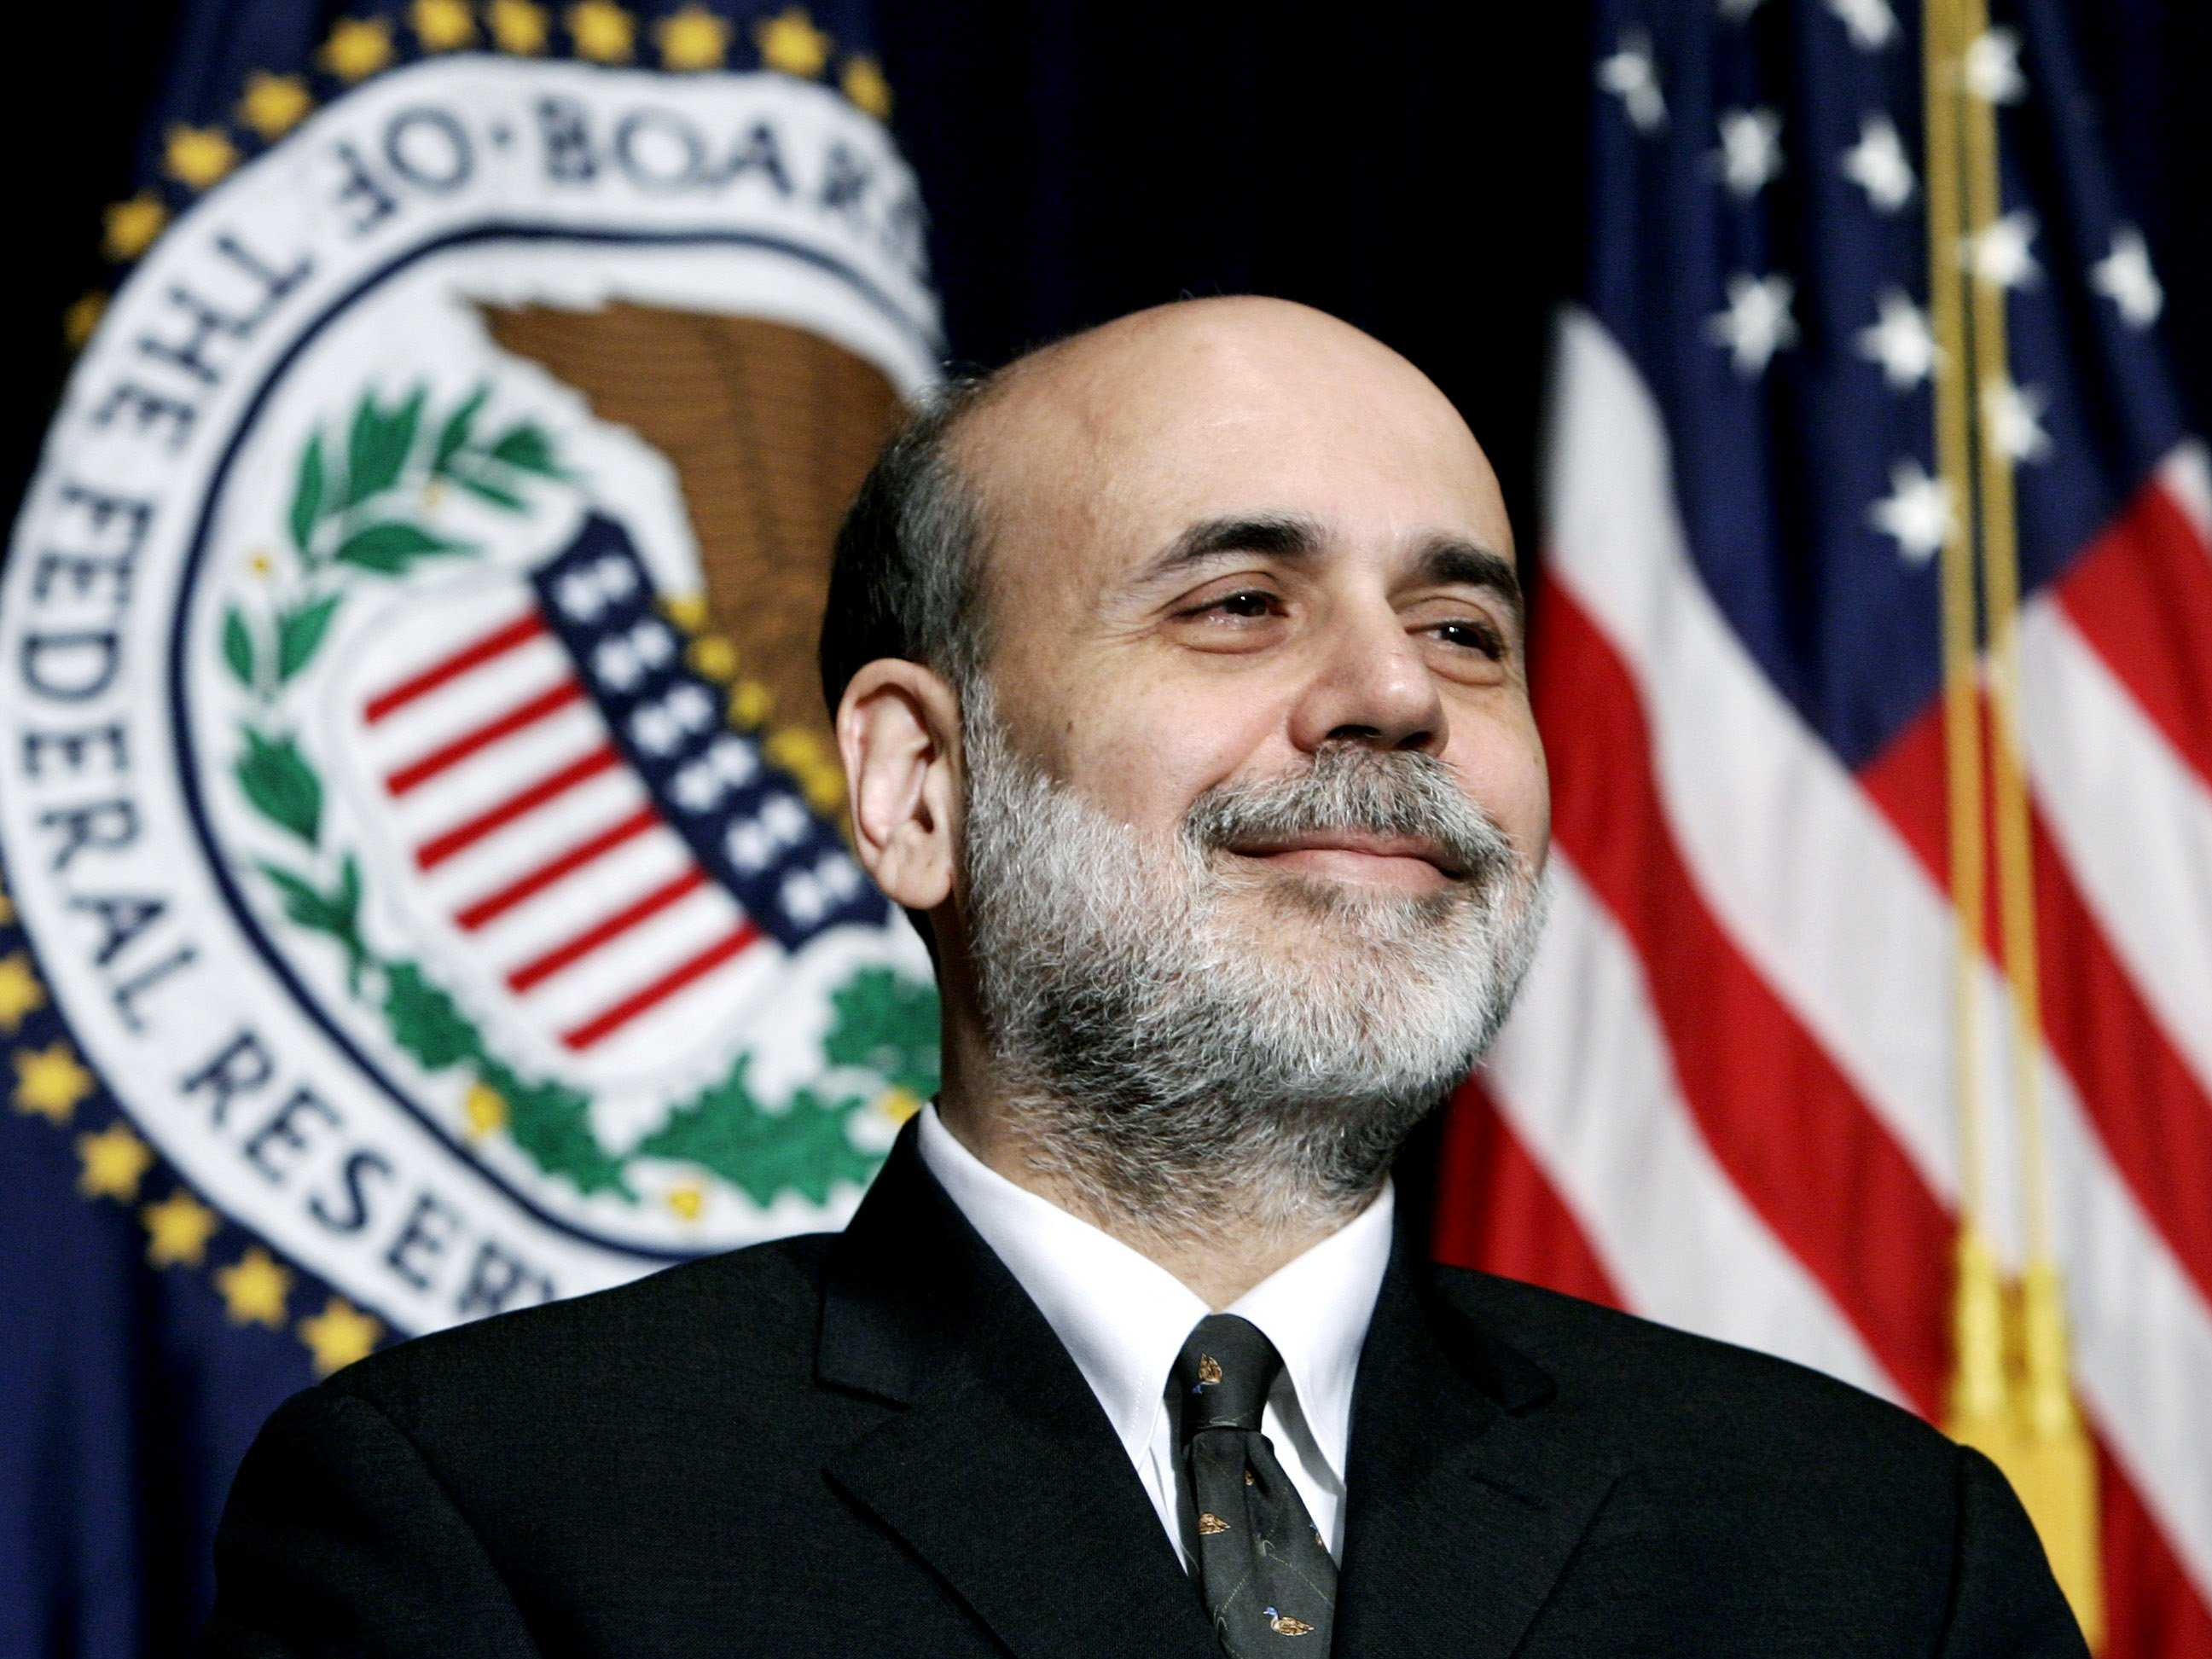 a biography of ban bernanke a chairman of the federal reserve of the united states of america Chair of the federal reserve the chair of the board of governors of the federal reserve system is the head of the federal reserve , which is the central banking system of the united states the position is known colloquially as chair of the fed or fed chair.